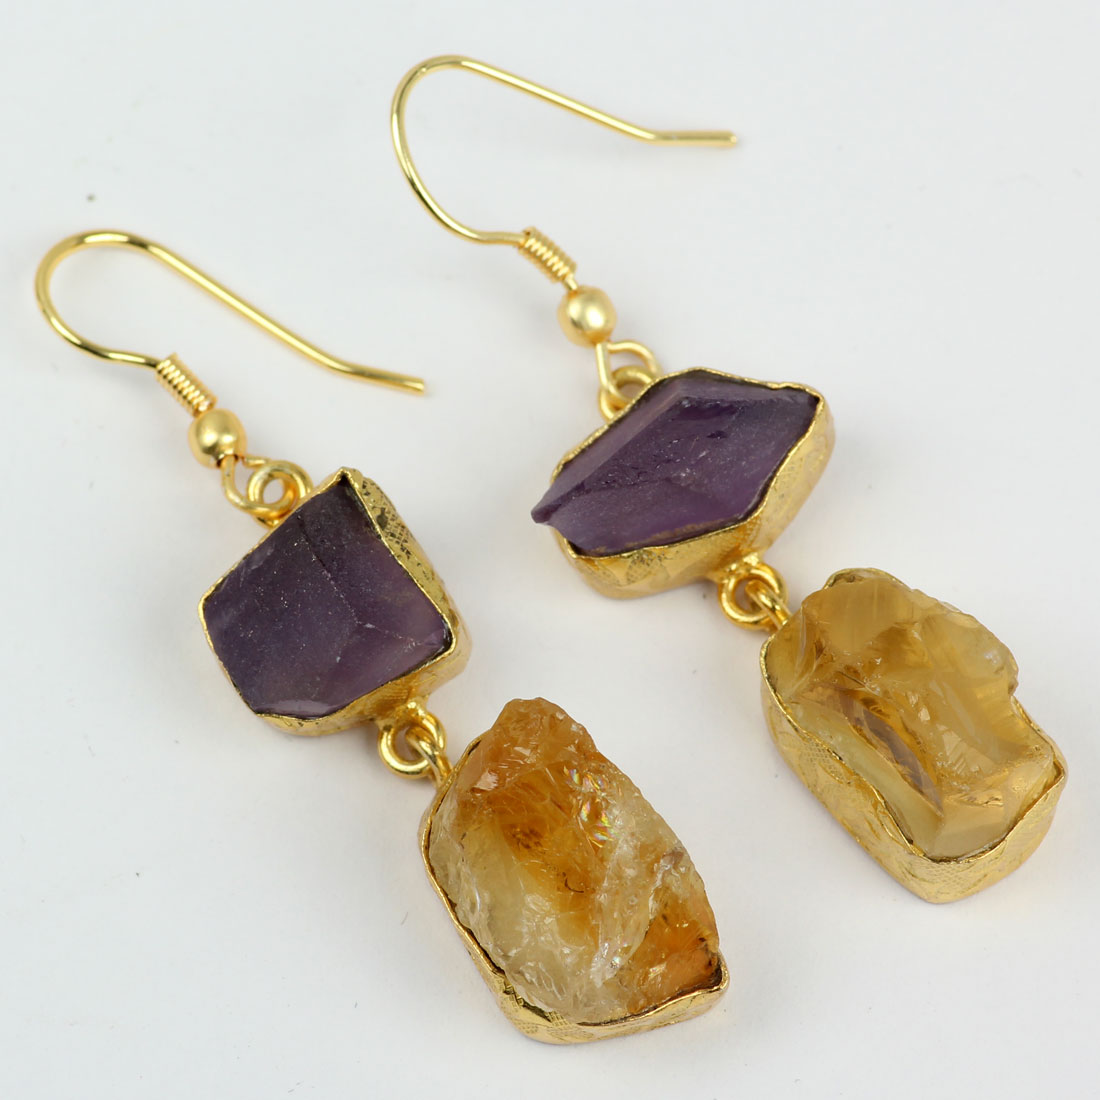 Amethyst And Citrine Rough A - PBE973-Stunning Design With Gold Plated Rough Brass Earrings